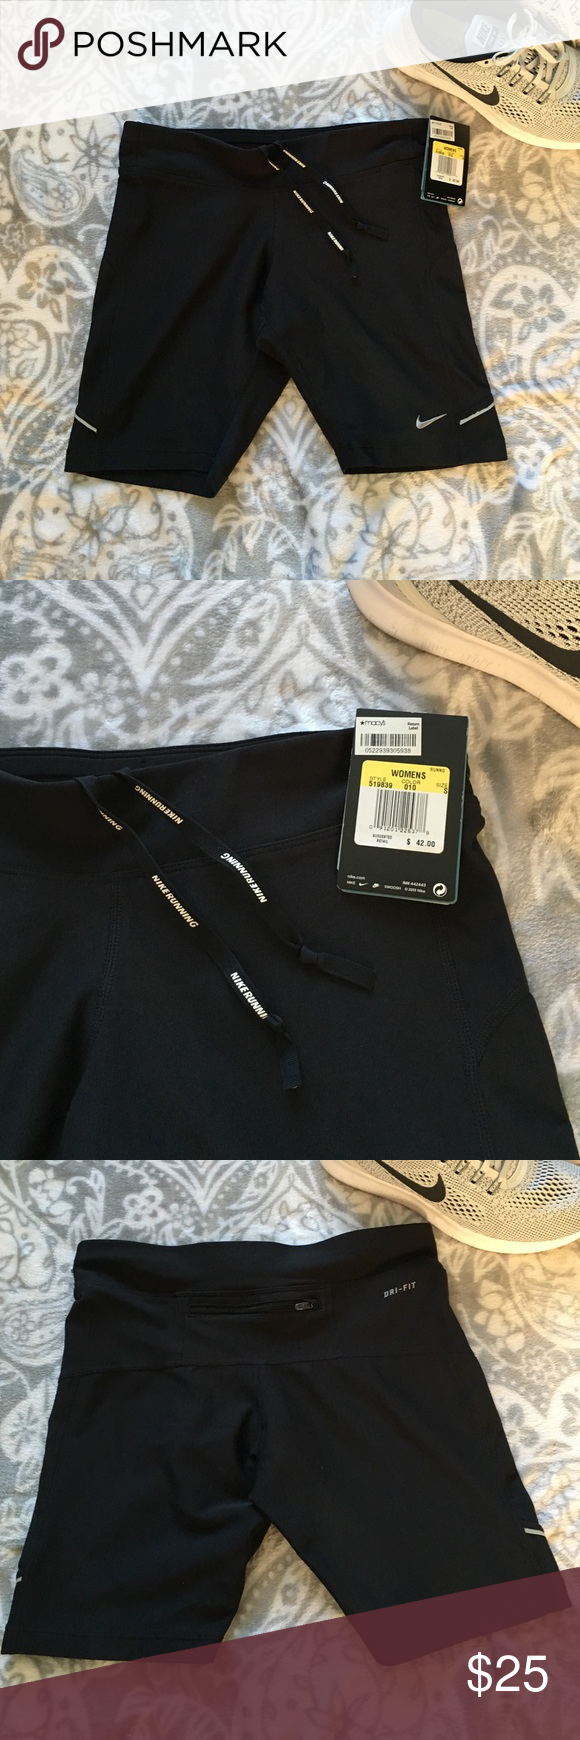 """New Listing! Nike Filament Training Shorts The Nike 8"""" Filament shorts have flat seams that hug body- wide, flat, stretch waist with interior drawcord and zip rear pocket. Brand new with tags. Nike Shorts"""